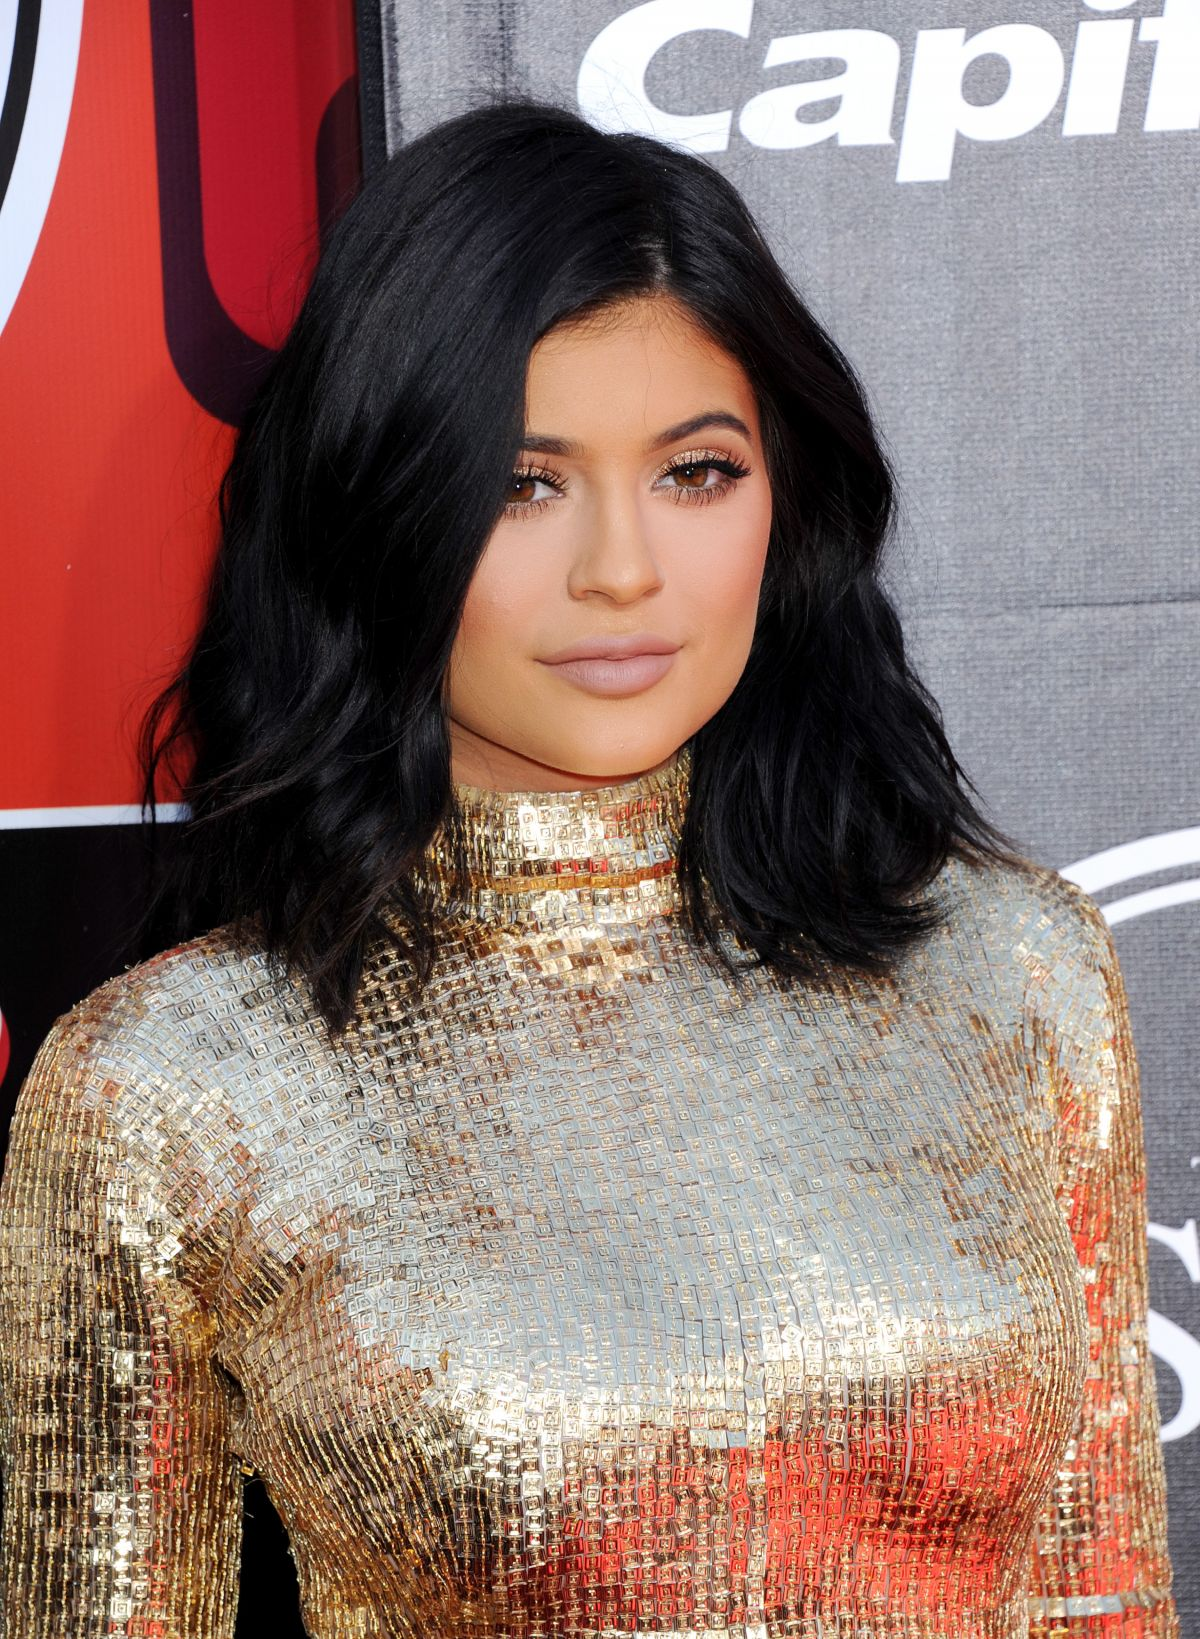 Kylie Jenner Arrives On The Red Carpet At Our Balmain X H: KYLIE JENNER At 2015 Espys Awards In Los Angeles